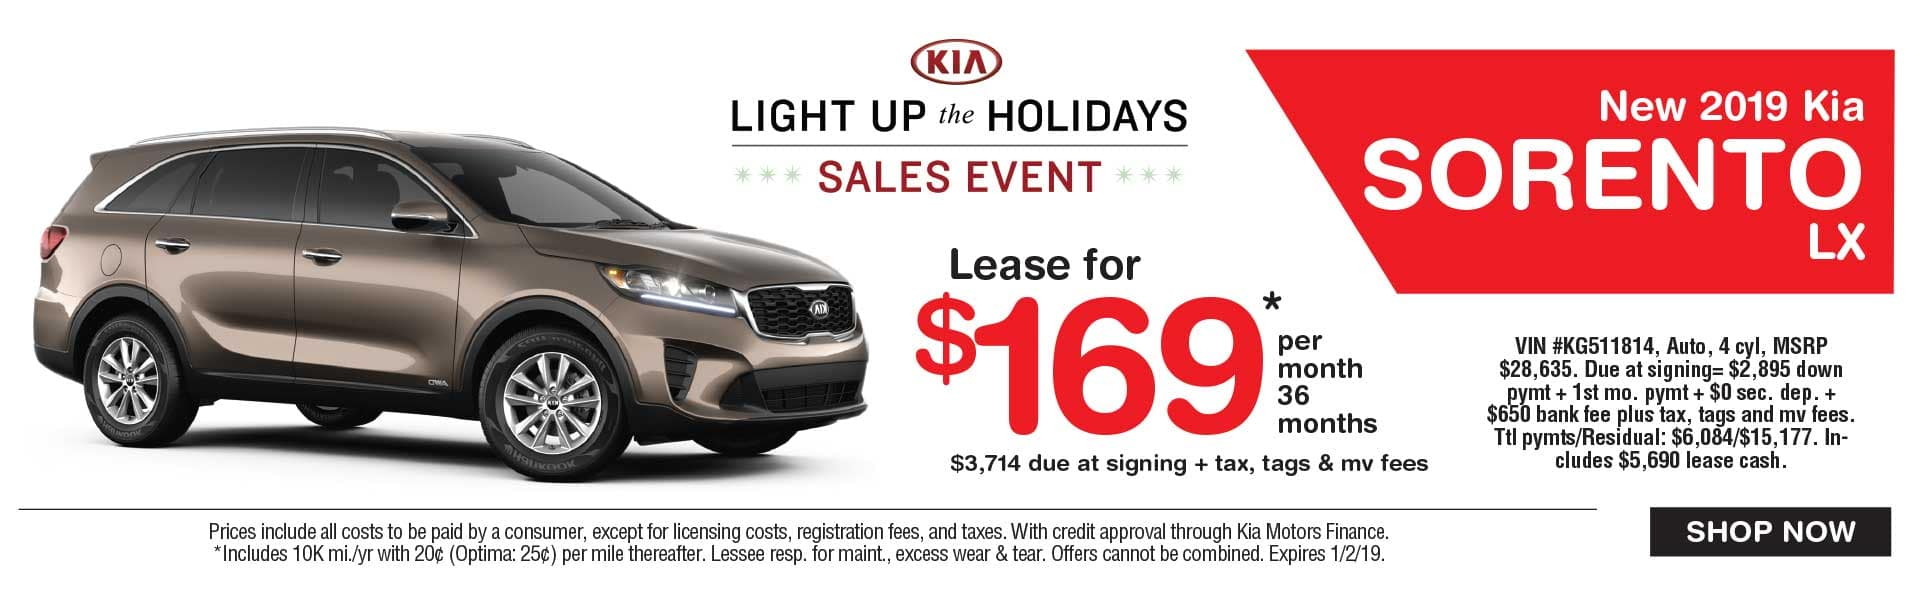 Kia Sorento lease savings at Global Kia